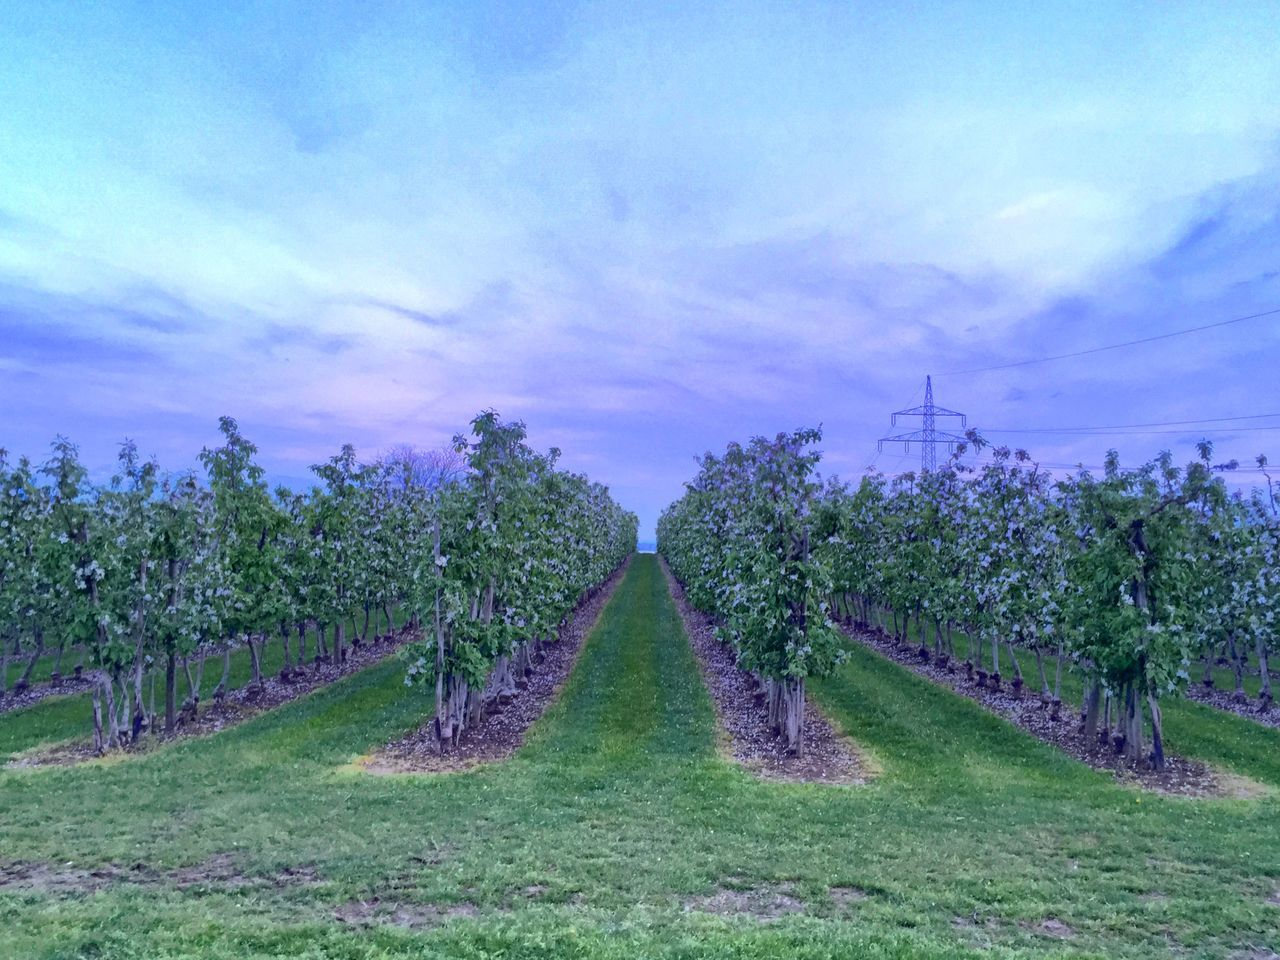 Scenic View Of Orchard Against Cloudy Sky